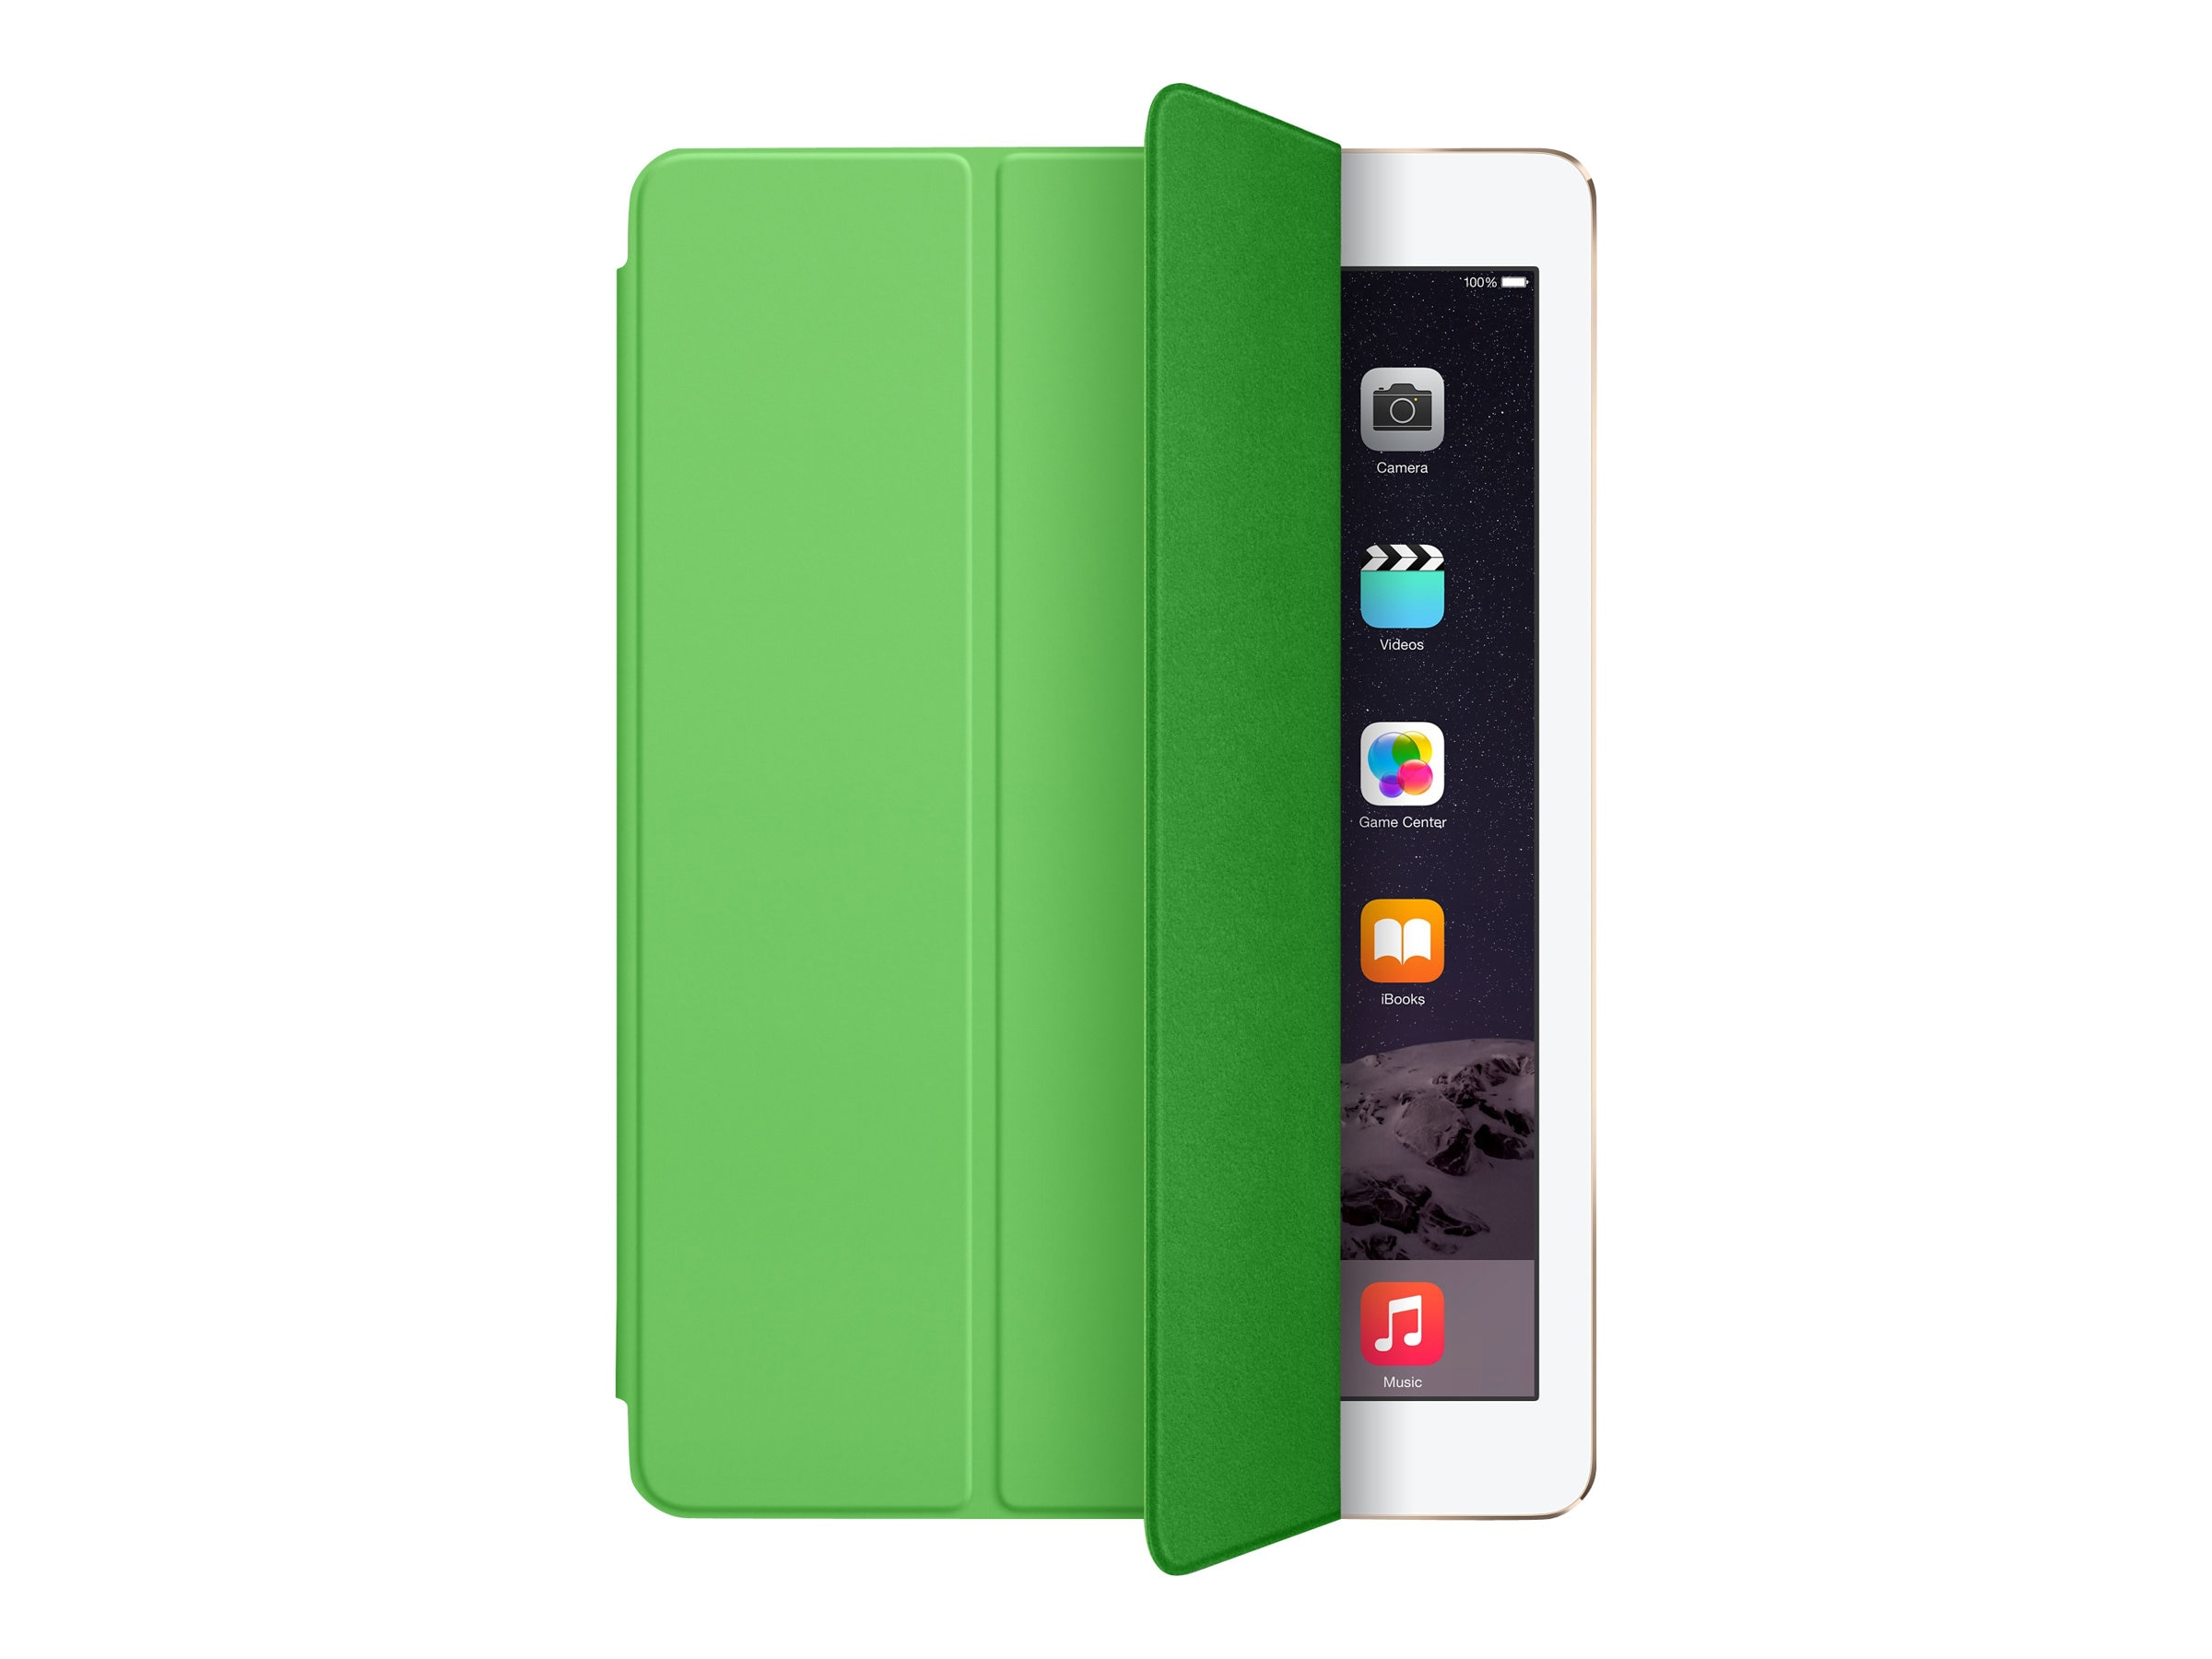 Apple iPad Air Smart Cover, Green, MGXL2ZM/A, 17959752, Carrying Cases - Tablets & eReaders